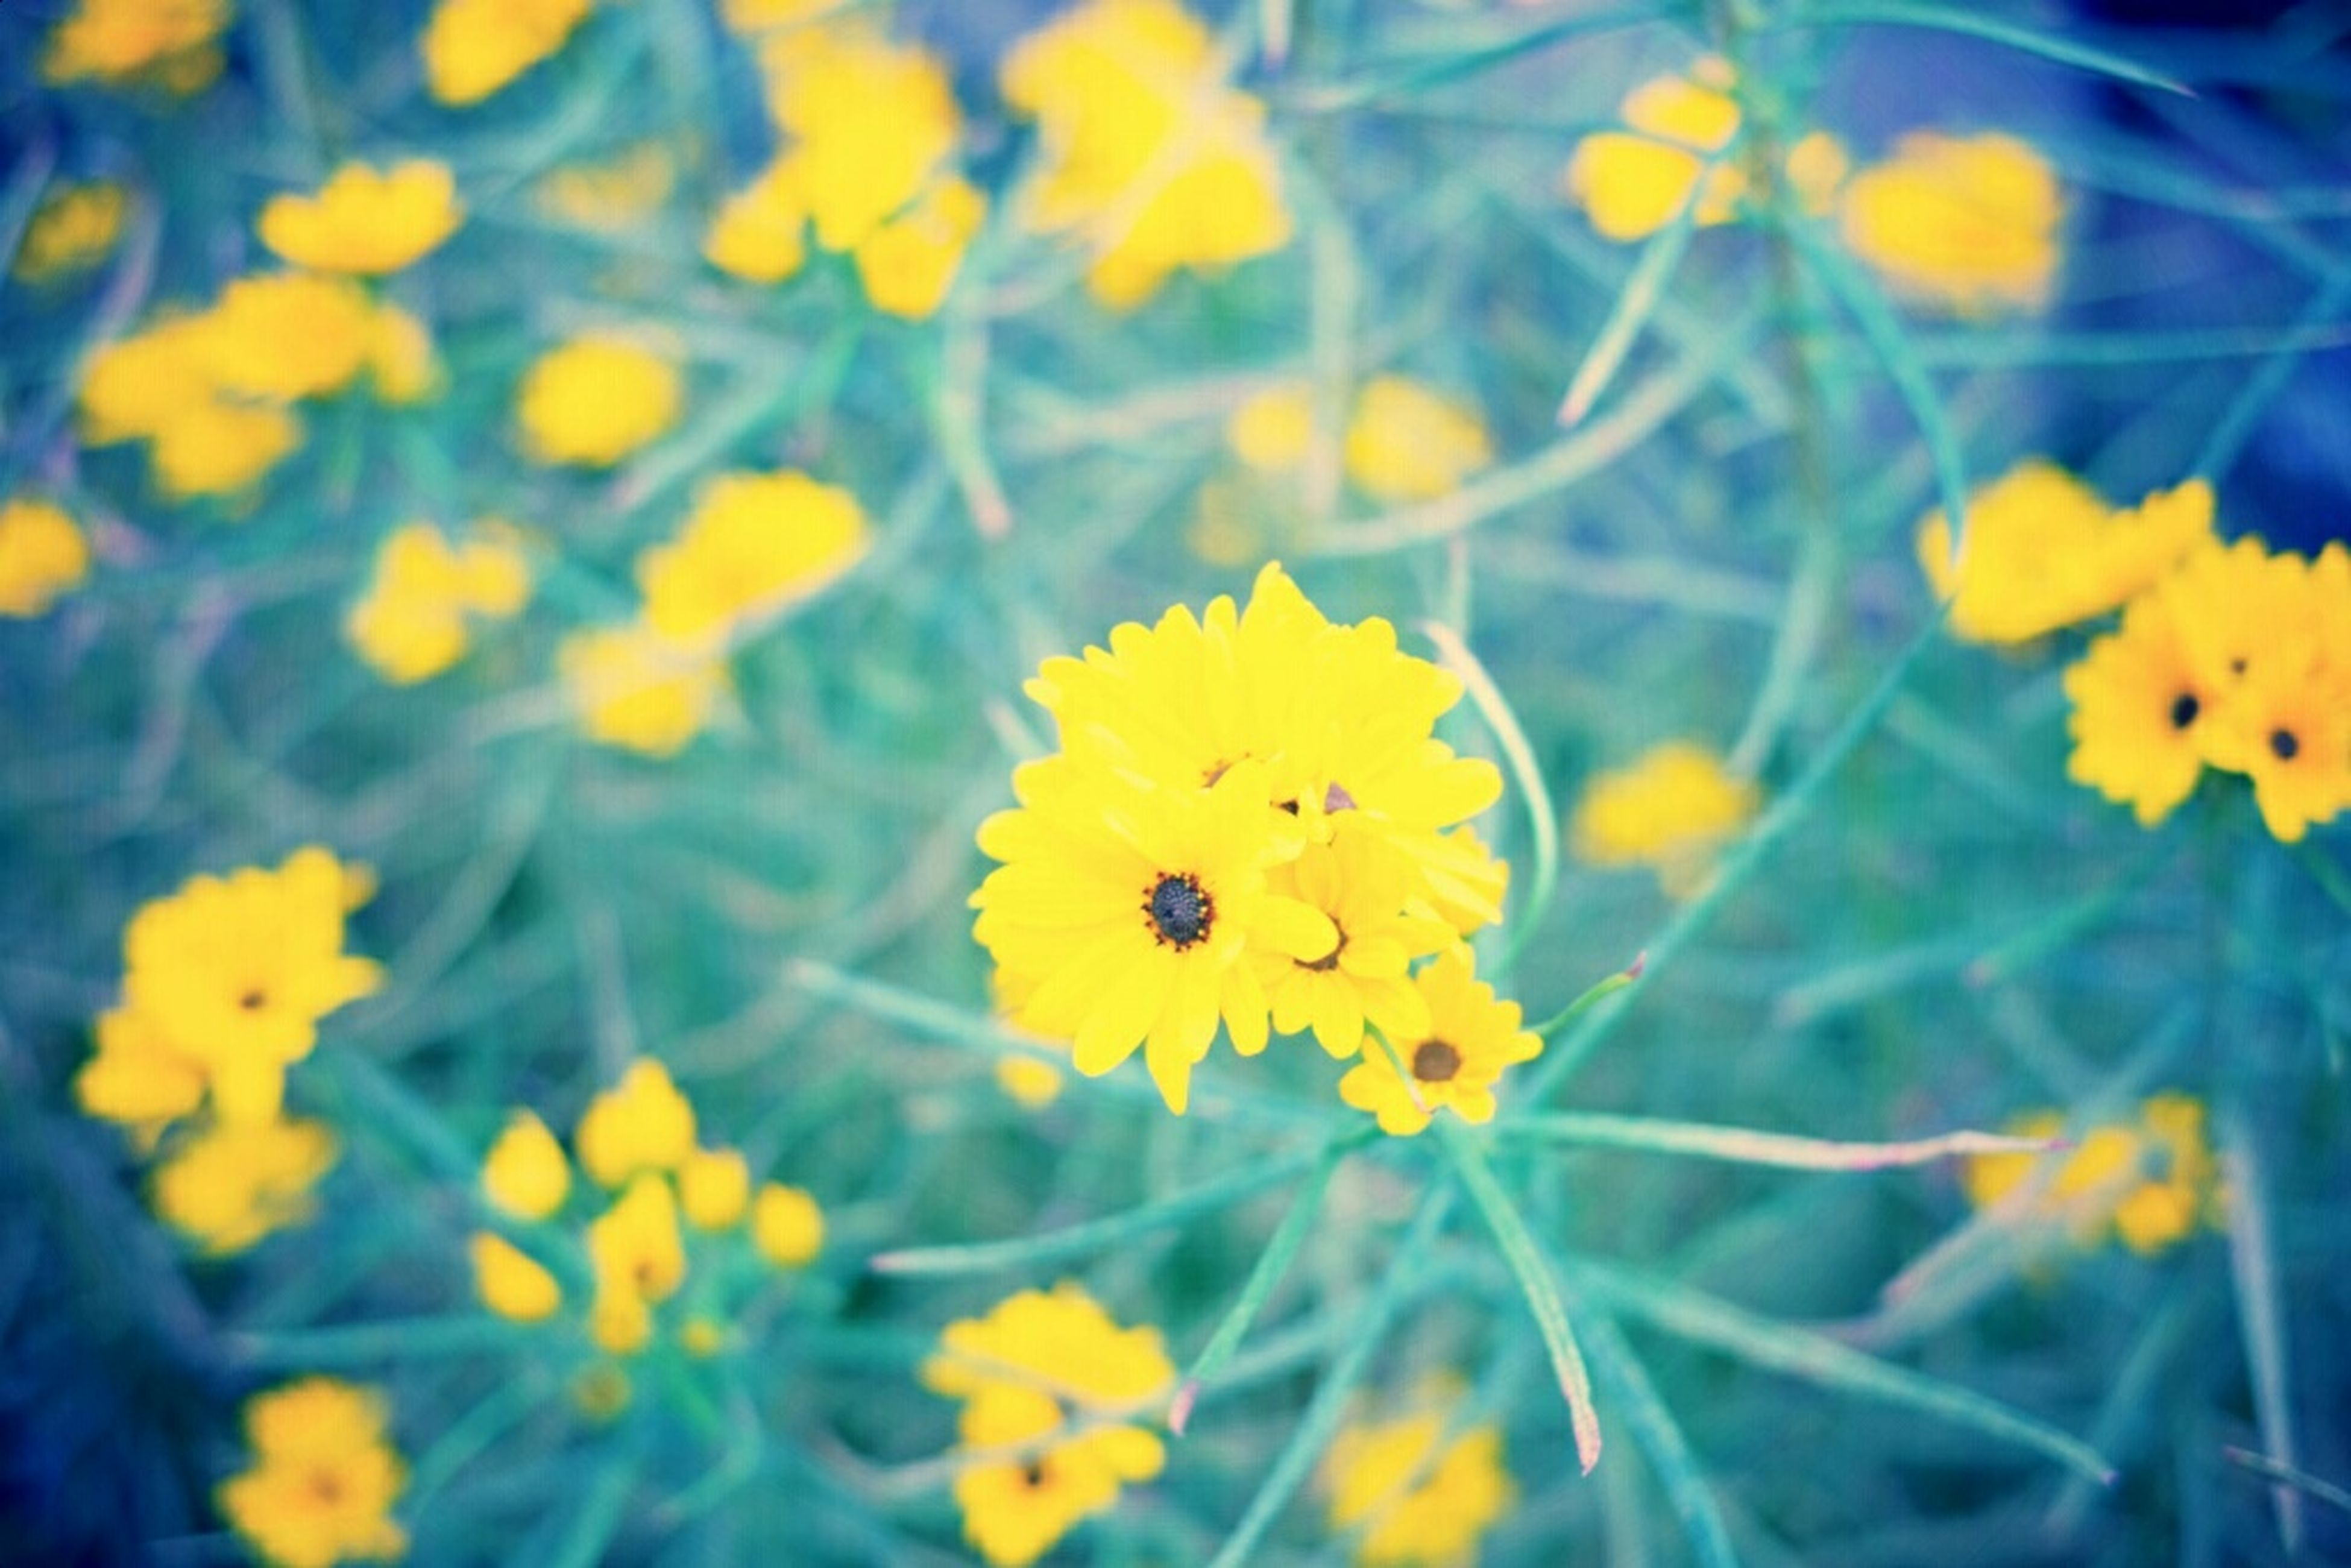 flower, yellow, petal, freshness, fragility, flower head, growth, beauty in nature, blooming, focus on foreground, nature, plant, insect, close-up, in bloom, selective focus, field, pollen, day, outdoors